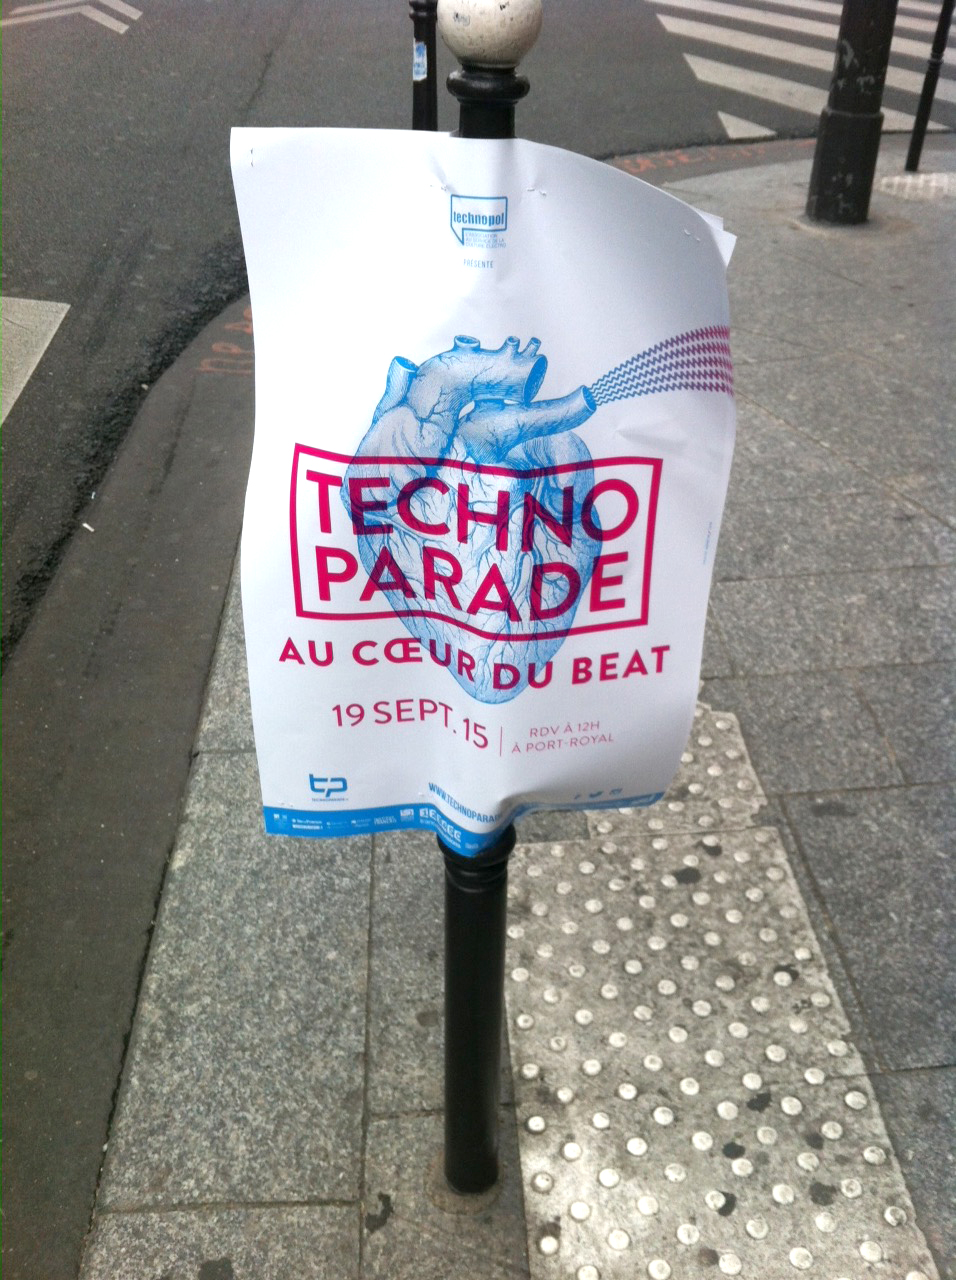 T-O_TECHNO-PARADE_6